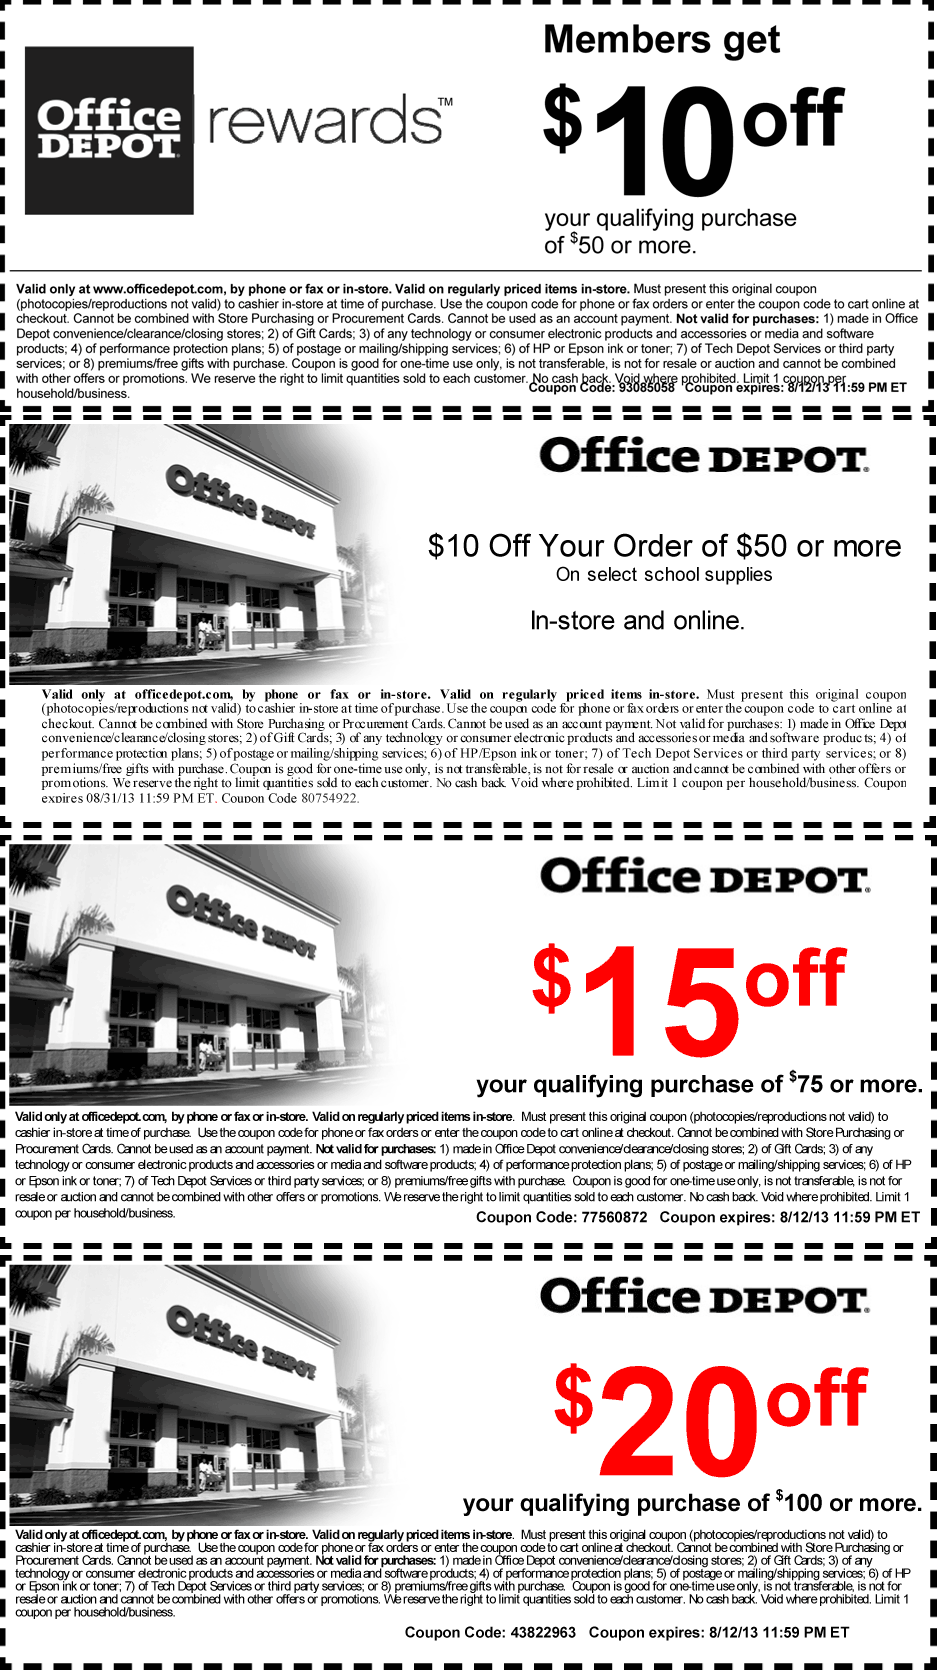 Office Depot Deal! Coupon apps, Coupons, School supplies